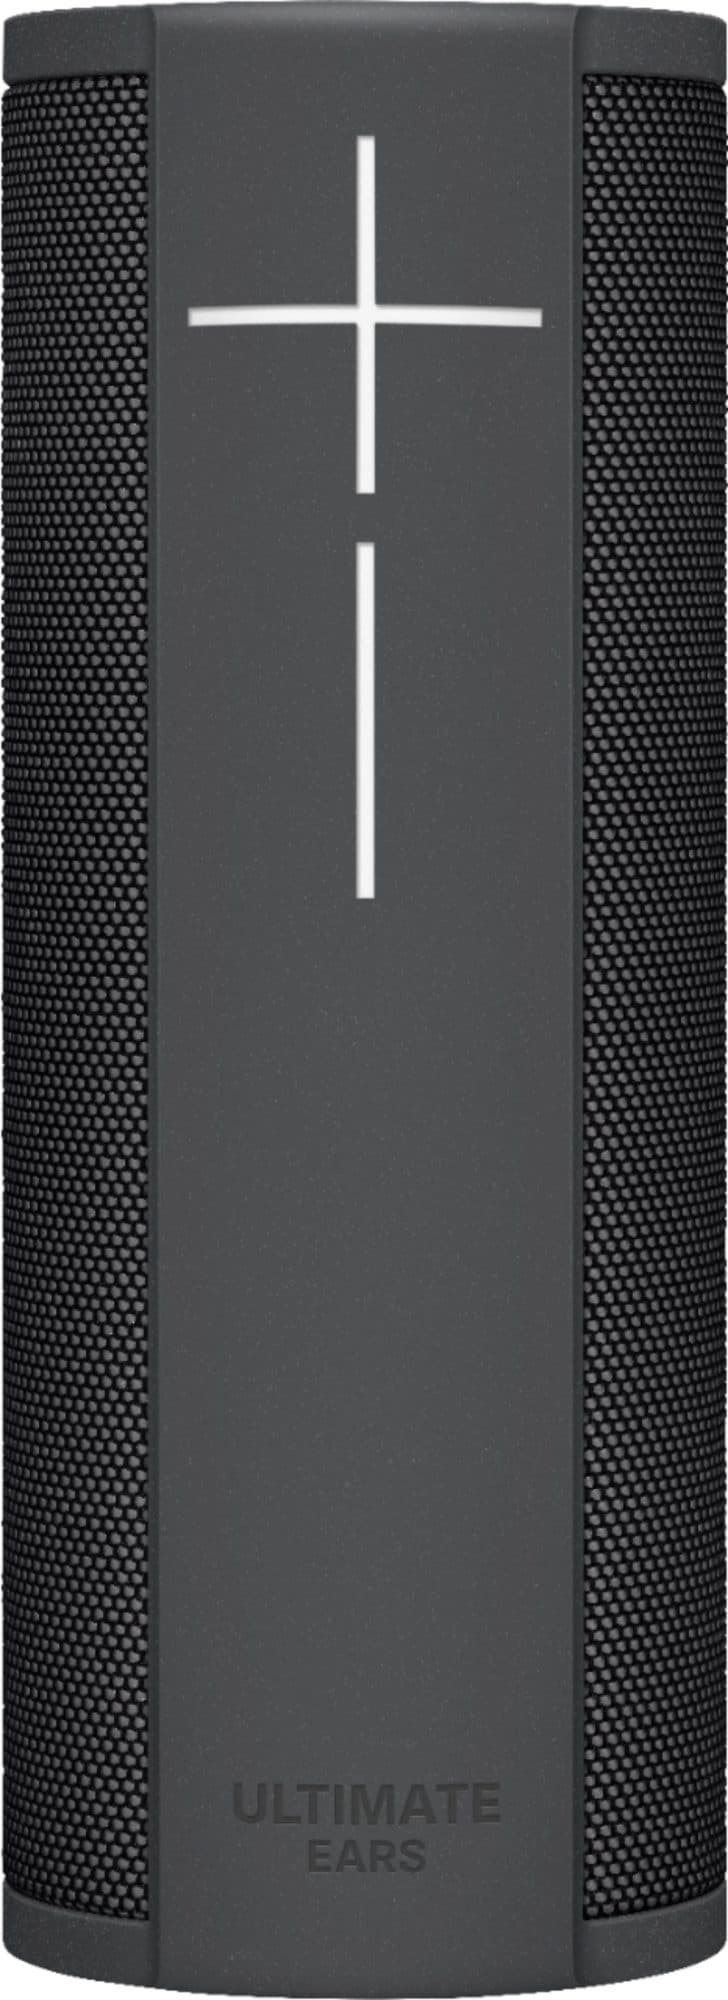 Ultimate Ears MEGABLAST Smart Portable Wi-Fi and Bluetooth Speaker with Amazon Alexa Voice Assistant. Find the MEGABLAST at your local Best Buy store.